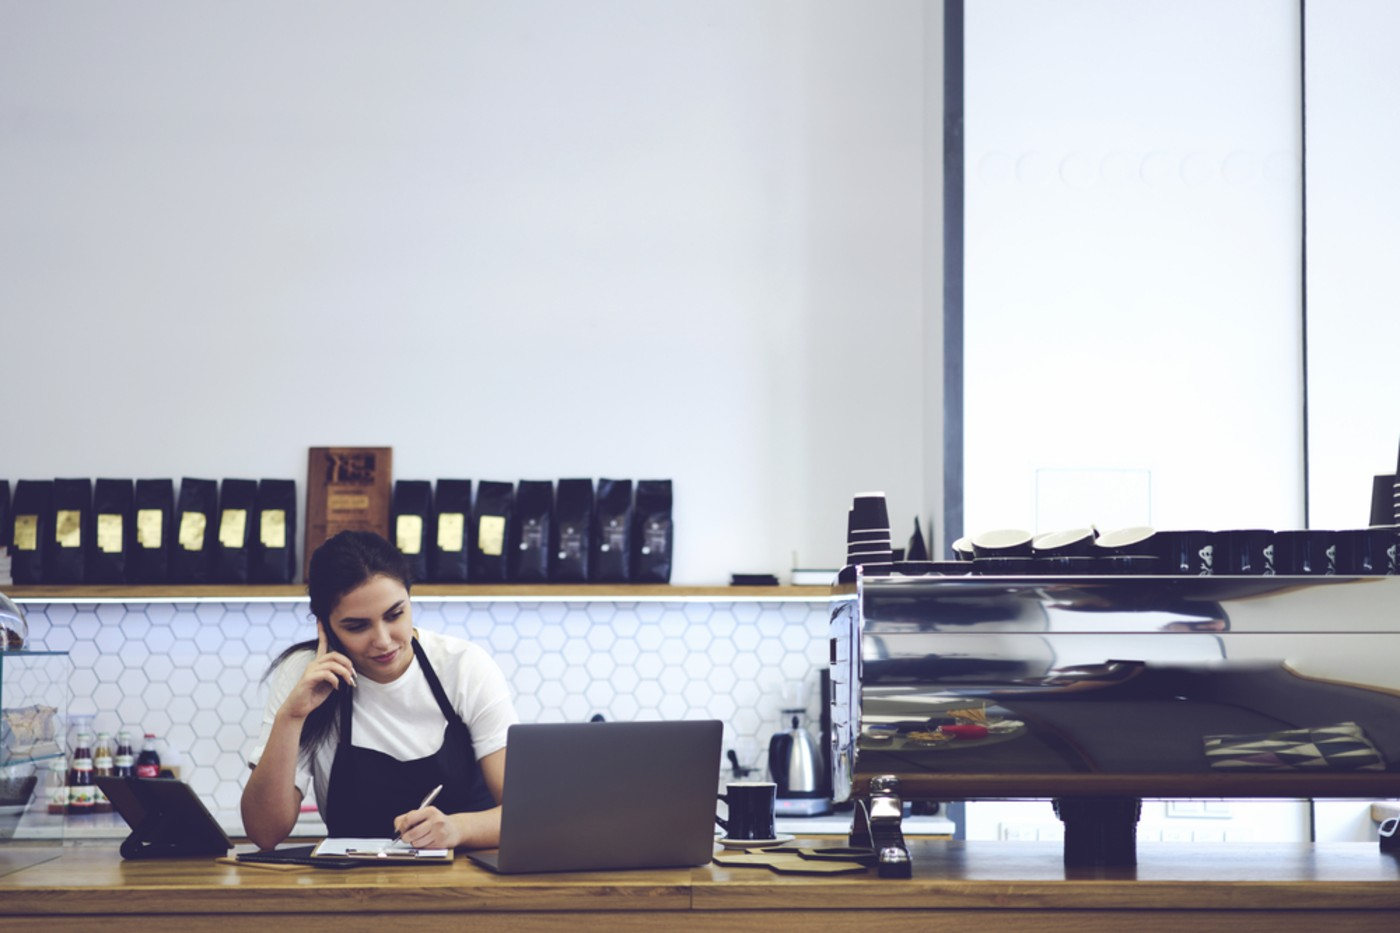 https://tickertapecdn.tdameritrade.com/assets/images/pages/md/Woman working at coffeeshop